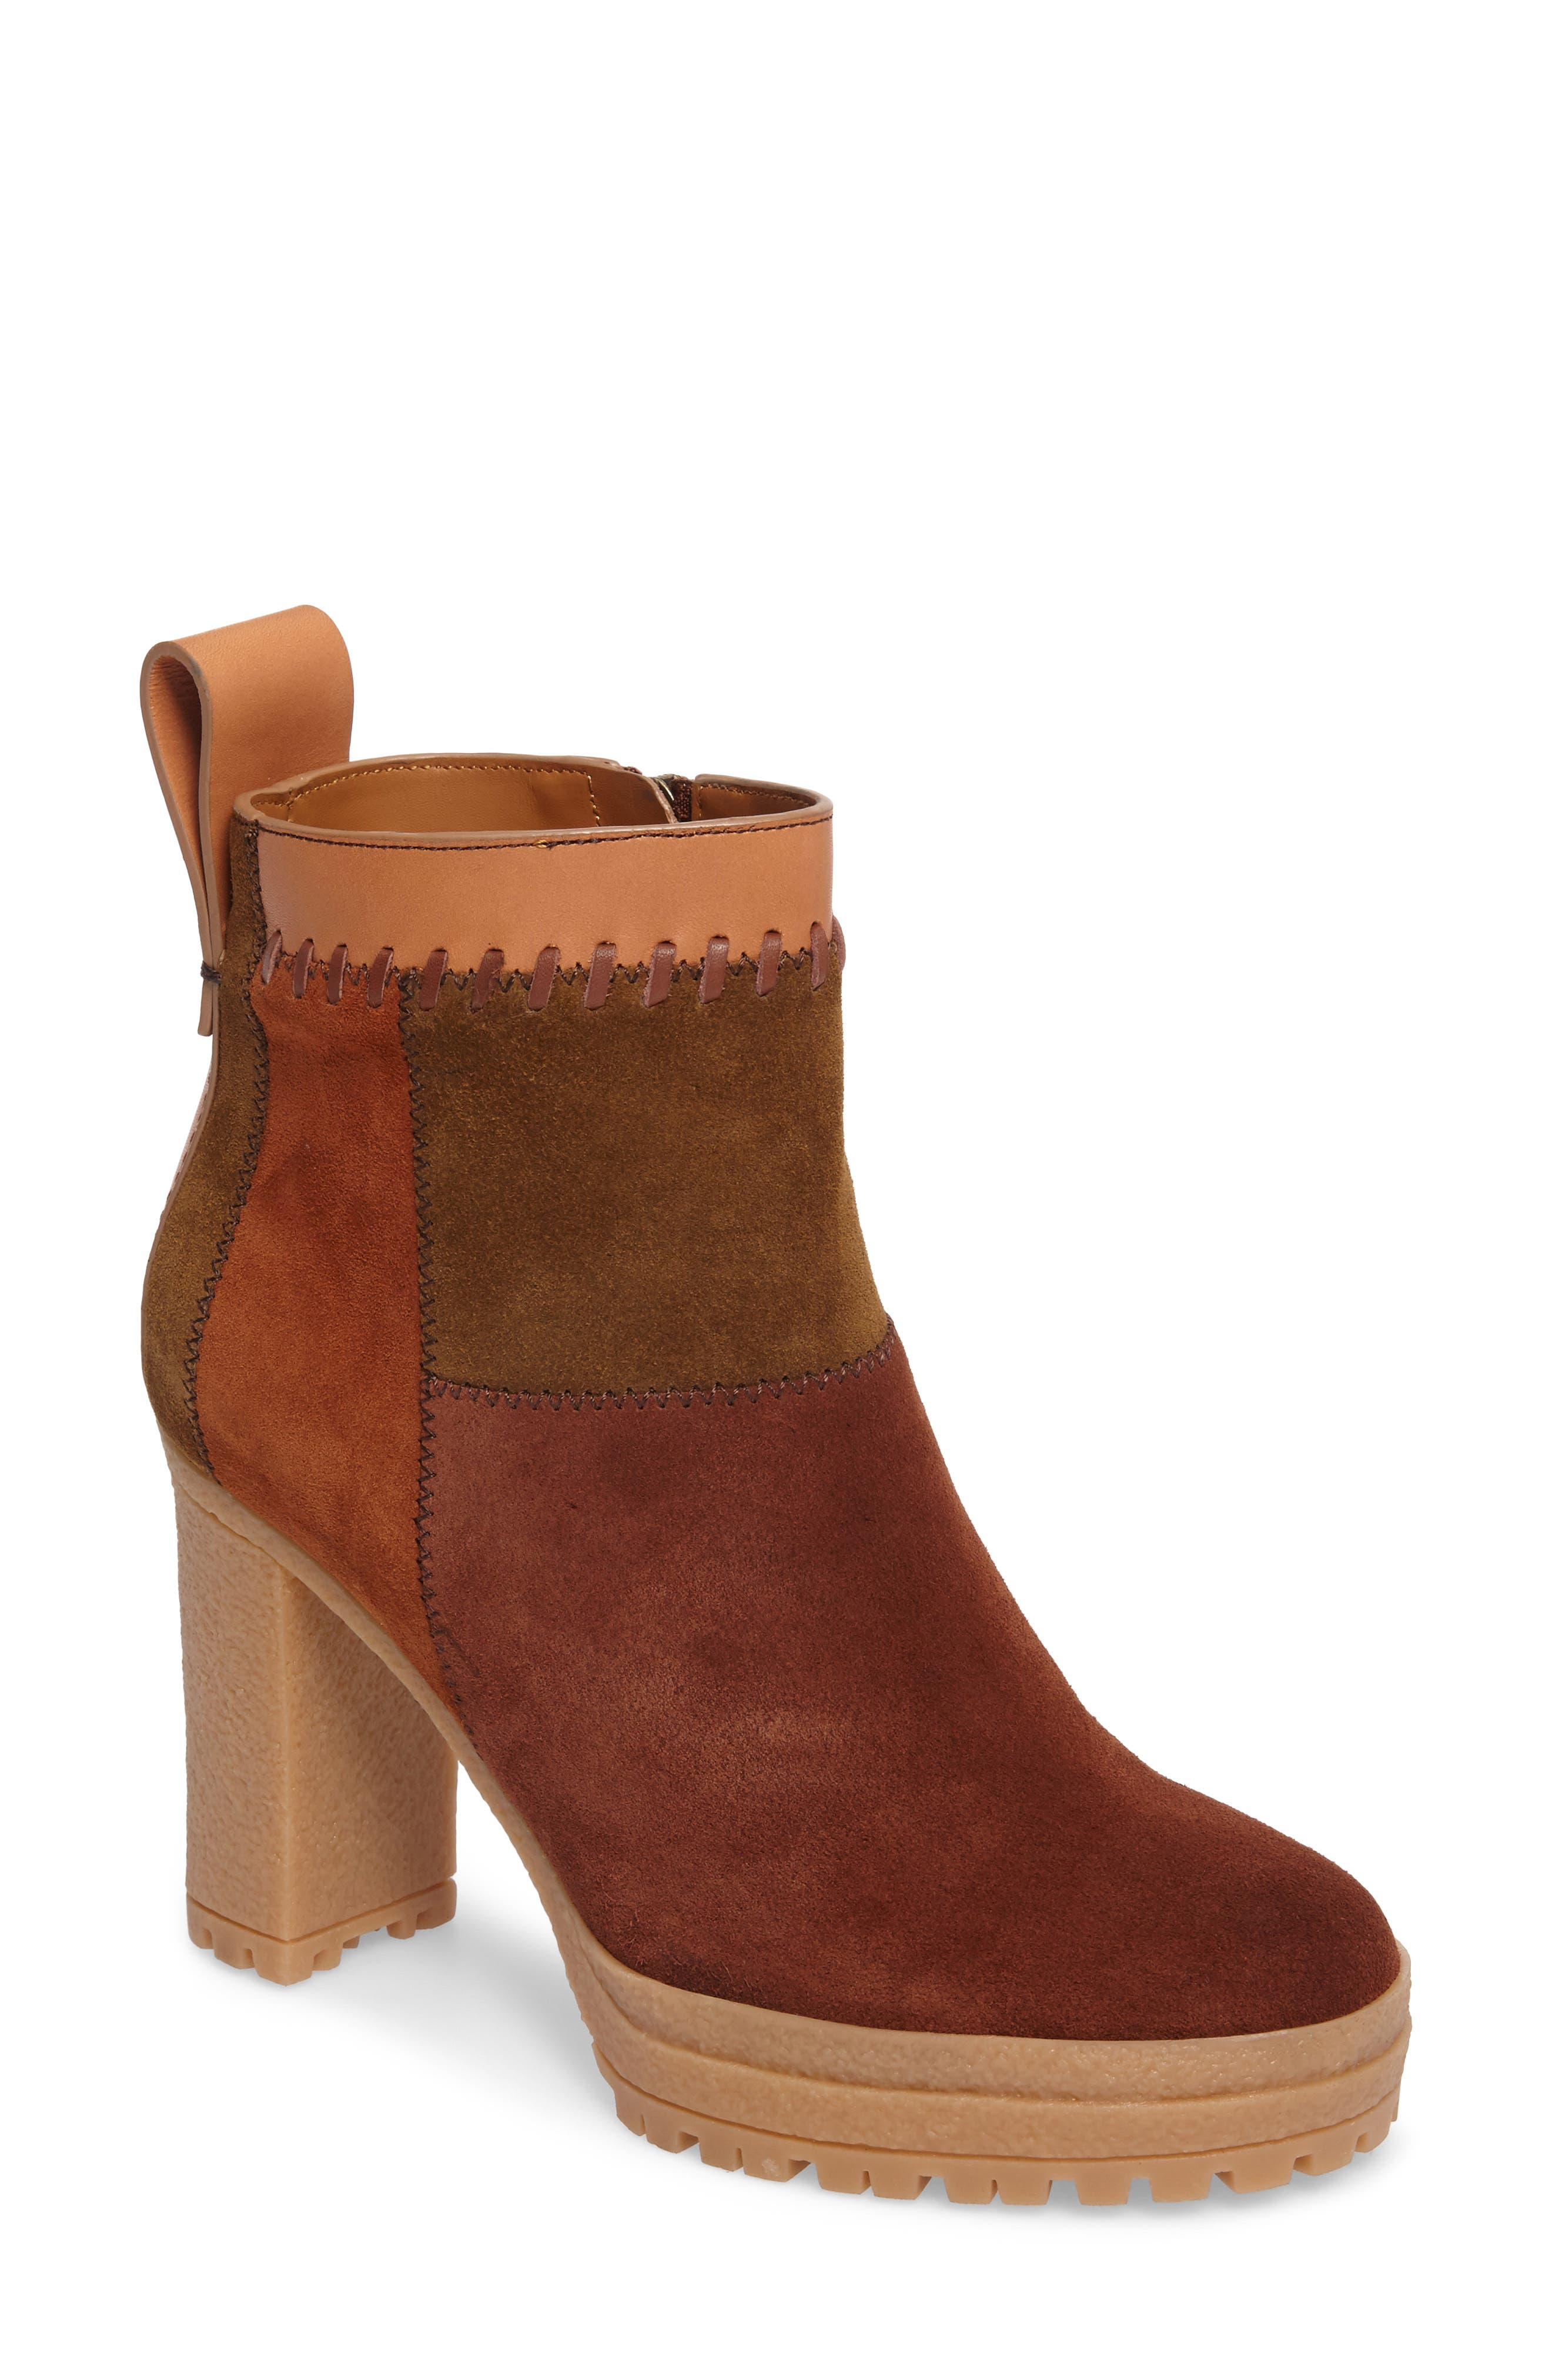 Main Image - See by Chloé Polina Patchwork Bootie (Women)